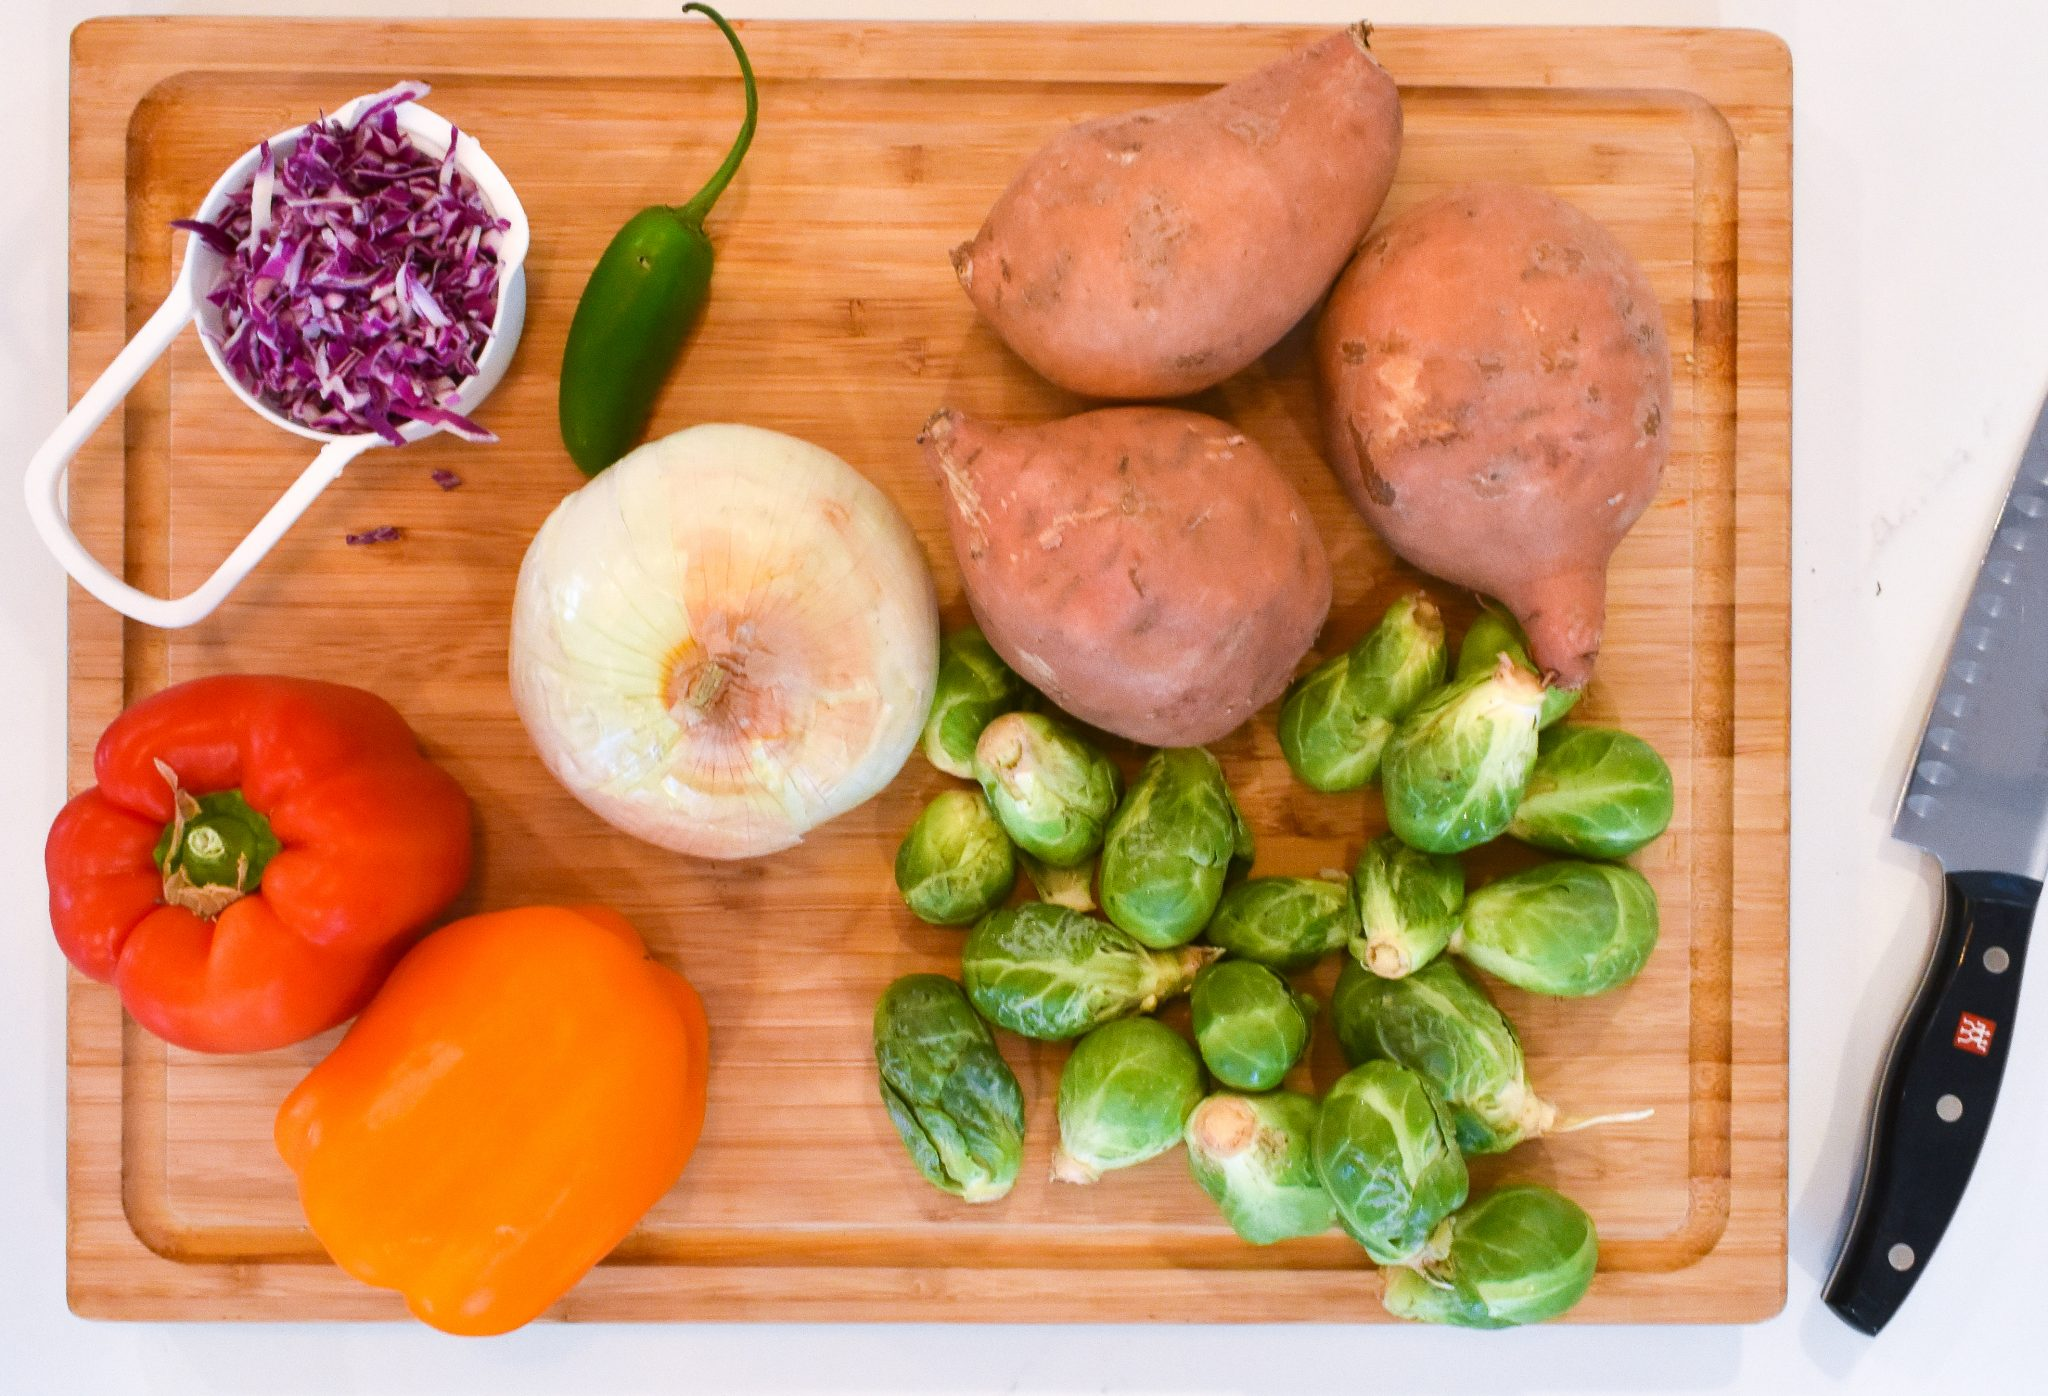 Sweet Potato and Brussel Sprout Casserole